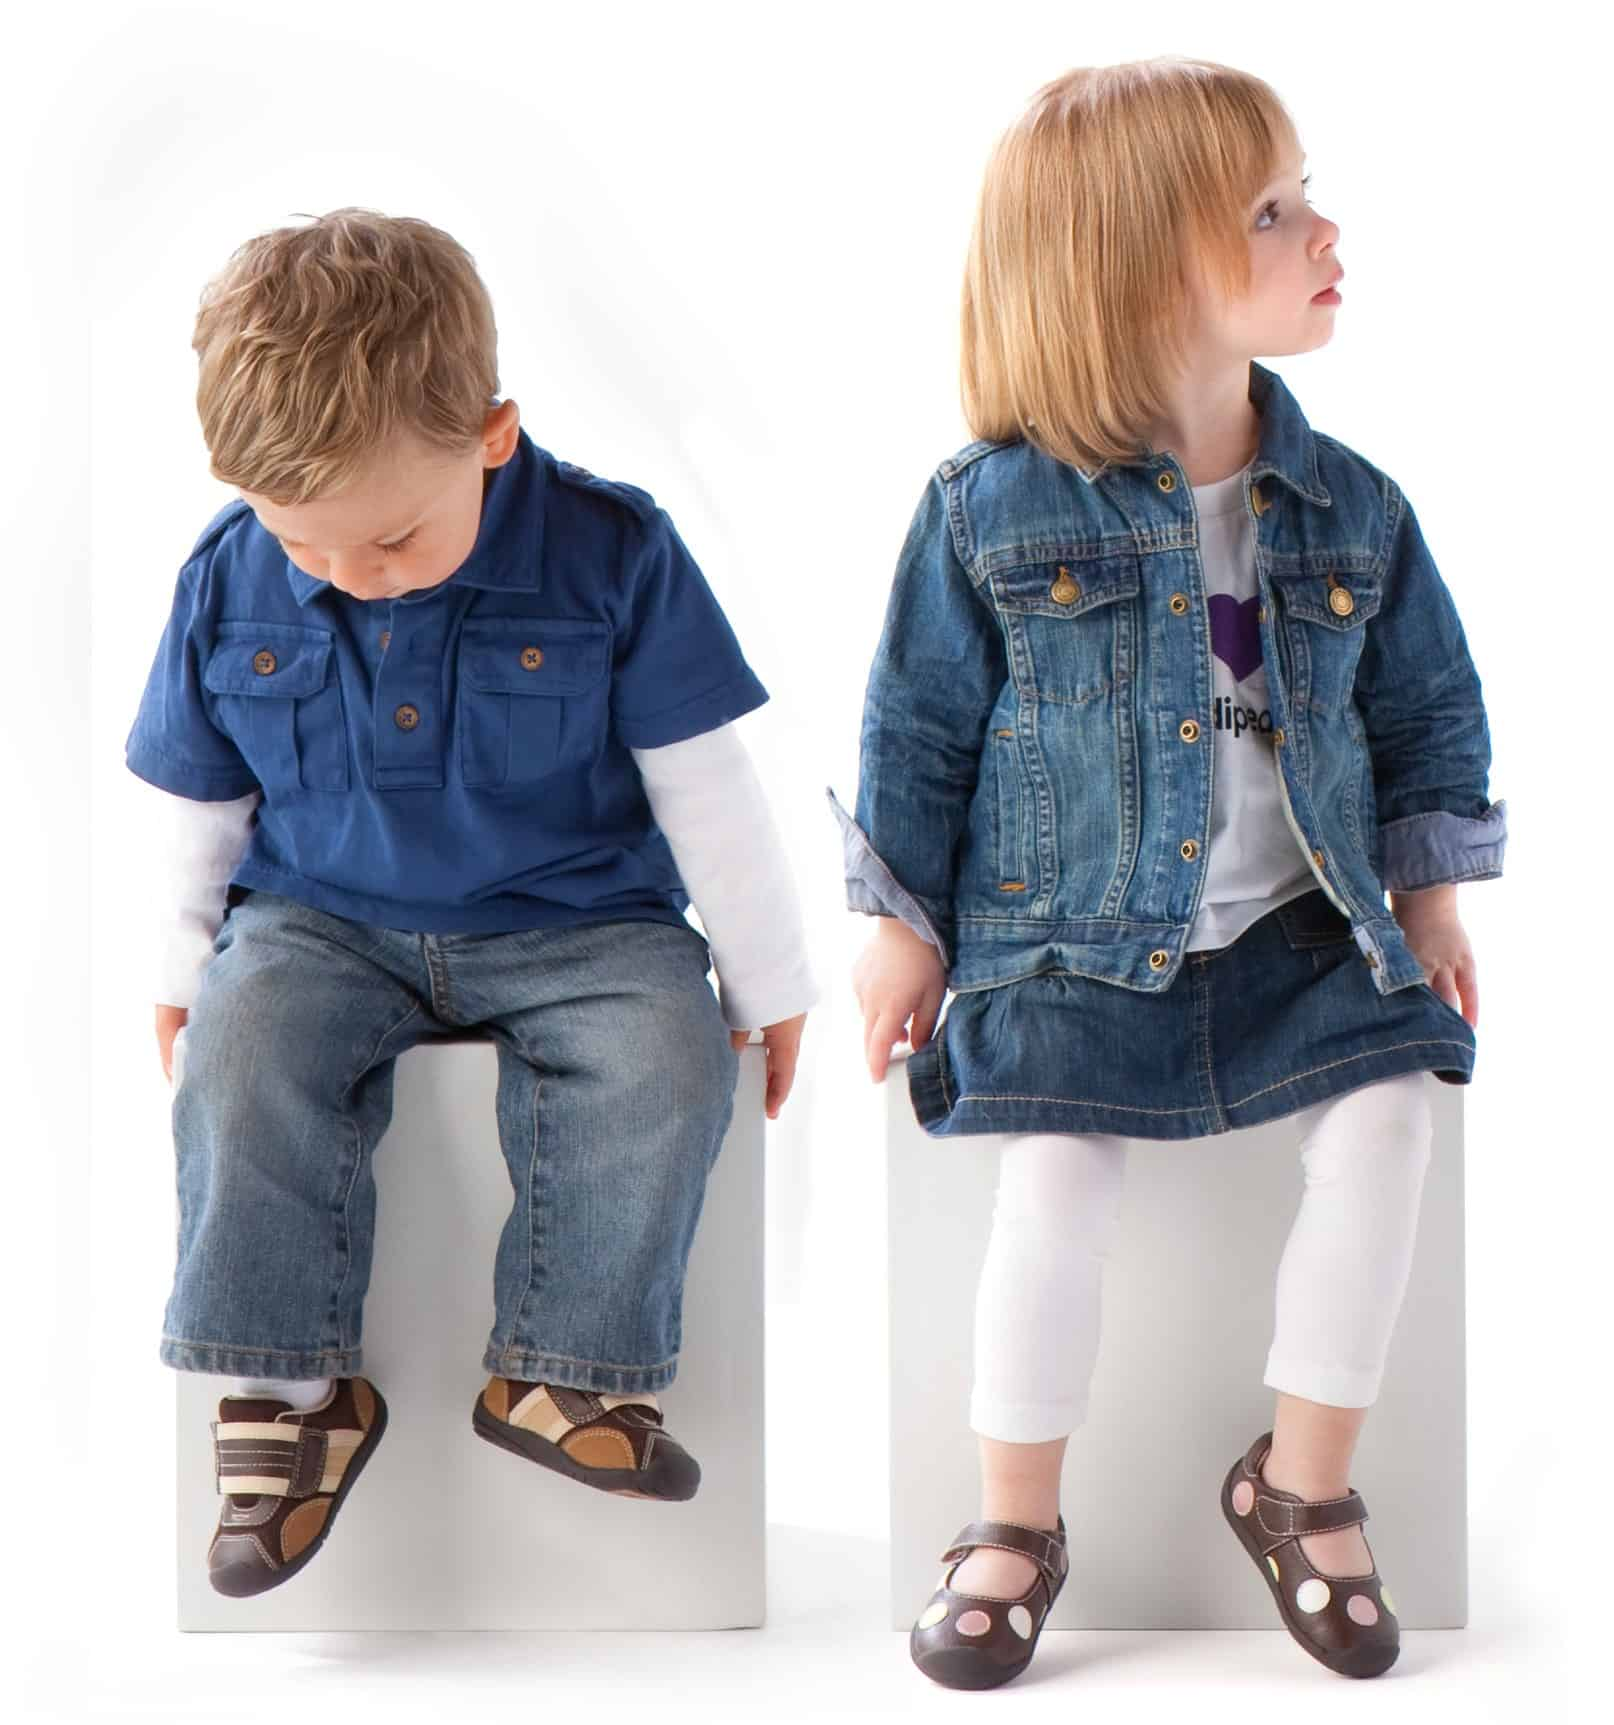 Pediped Introduces the New Fall Line